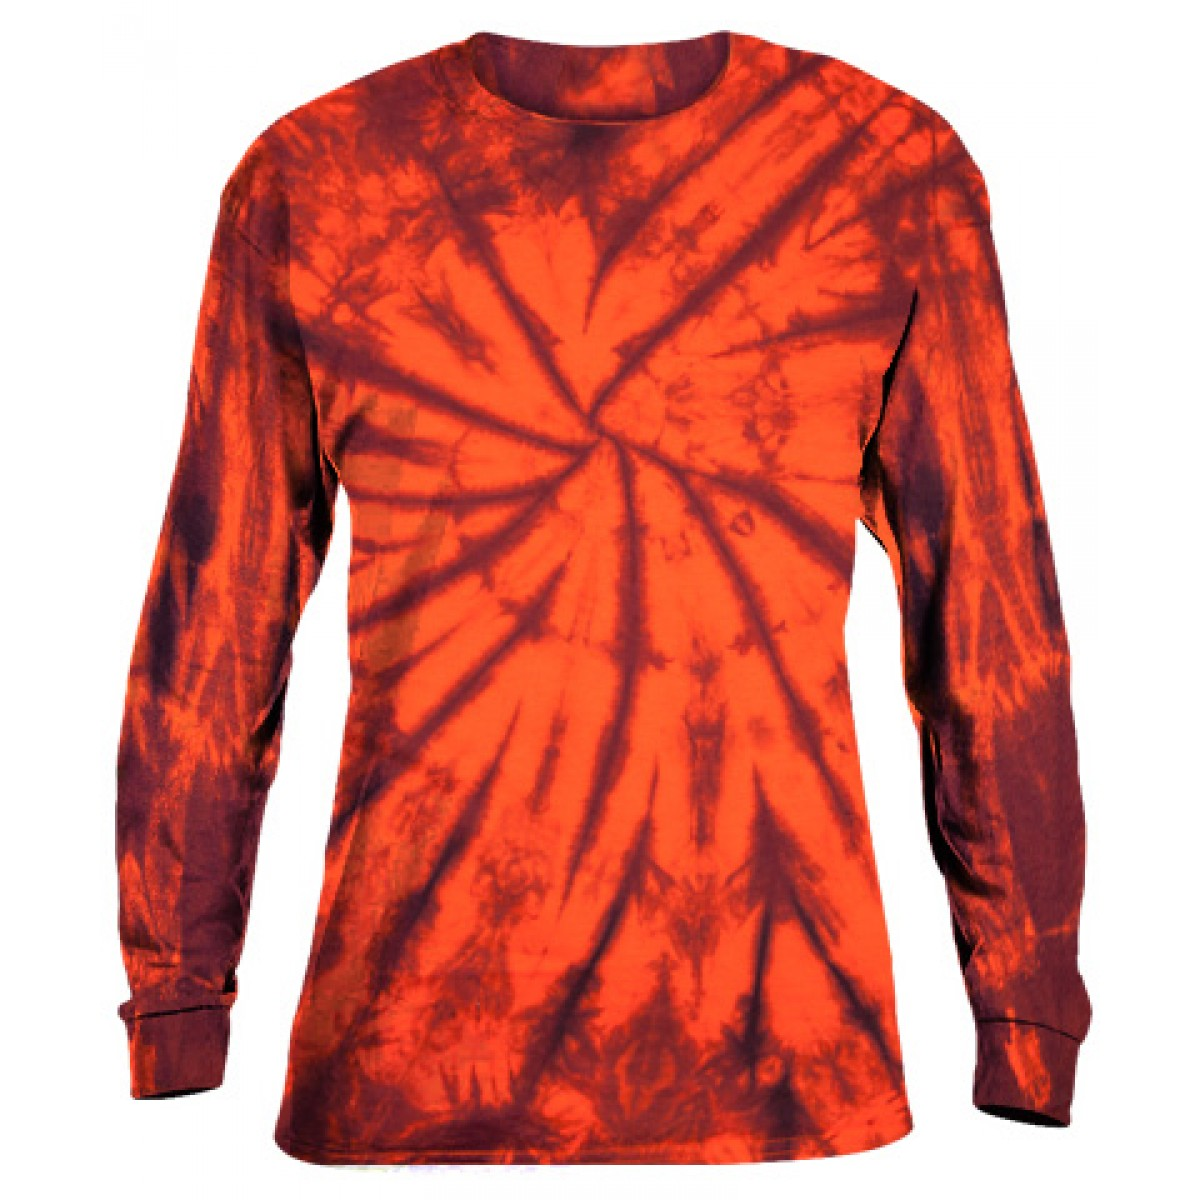 Tie-Dye Long Sleeve Shirt -Fall Orange -3XL